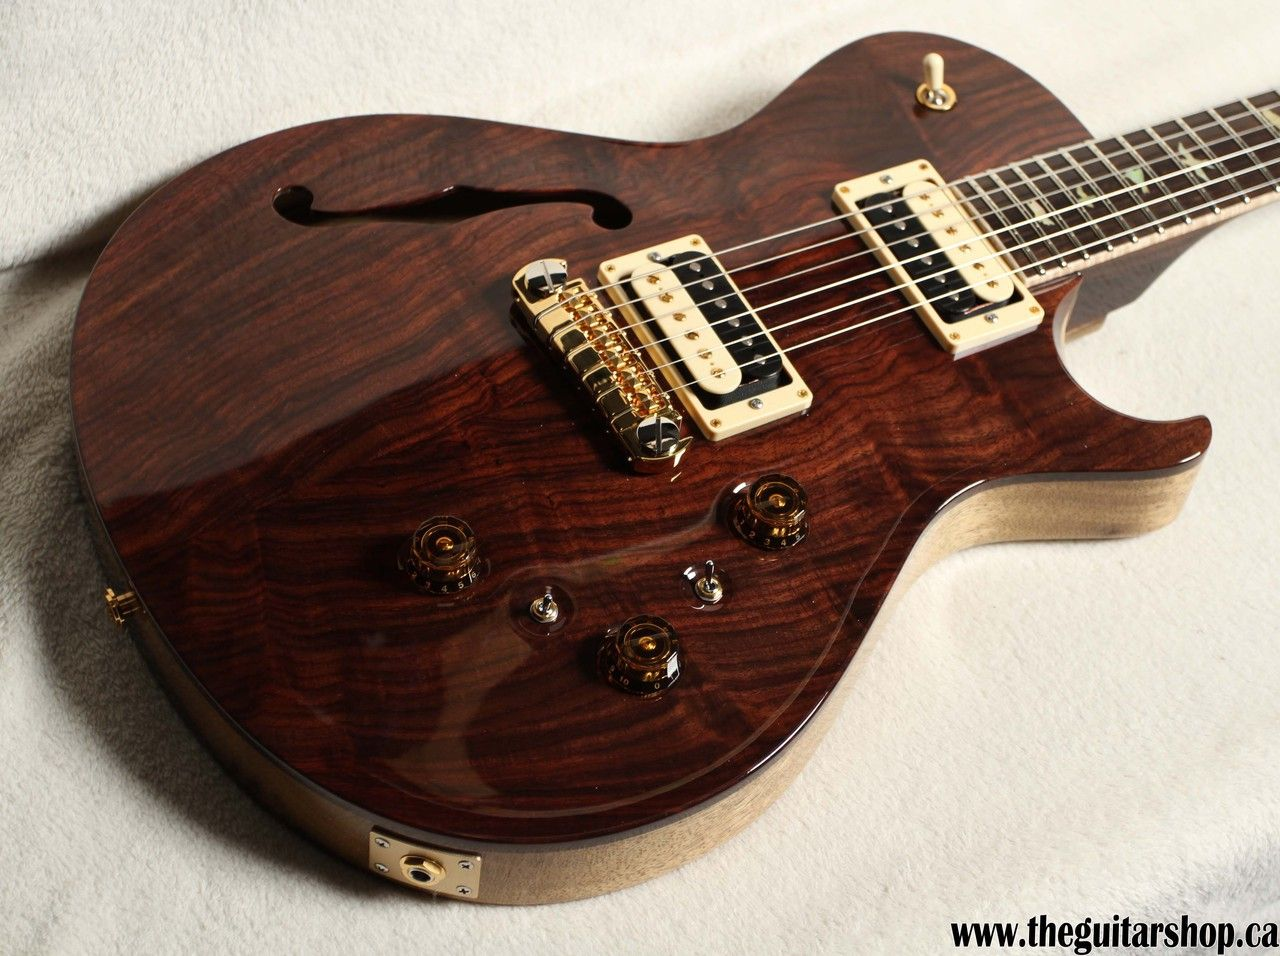 Prs Private Stock Ps6063 Singlecut Semi Hollow With Trick Wiring The Guitar Shop 905 274 5555